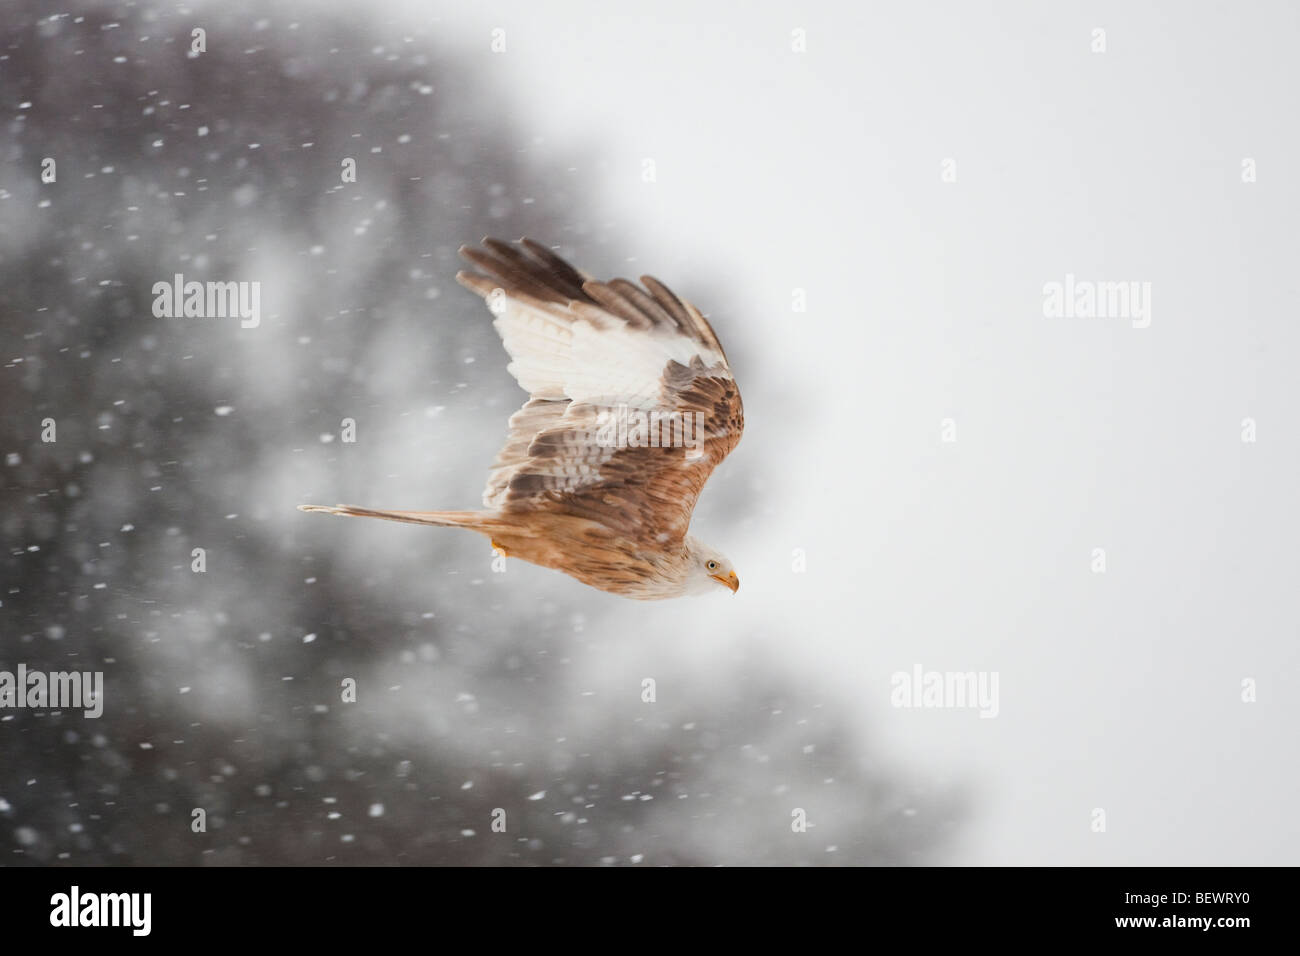 Leucistic red kite flying in a snow storm - Stock Image